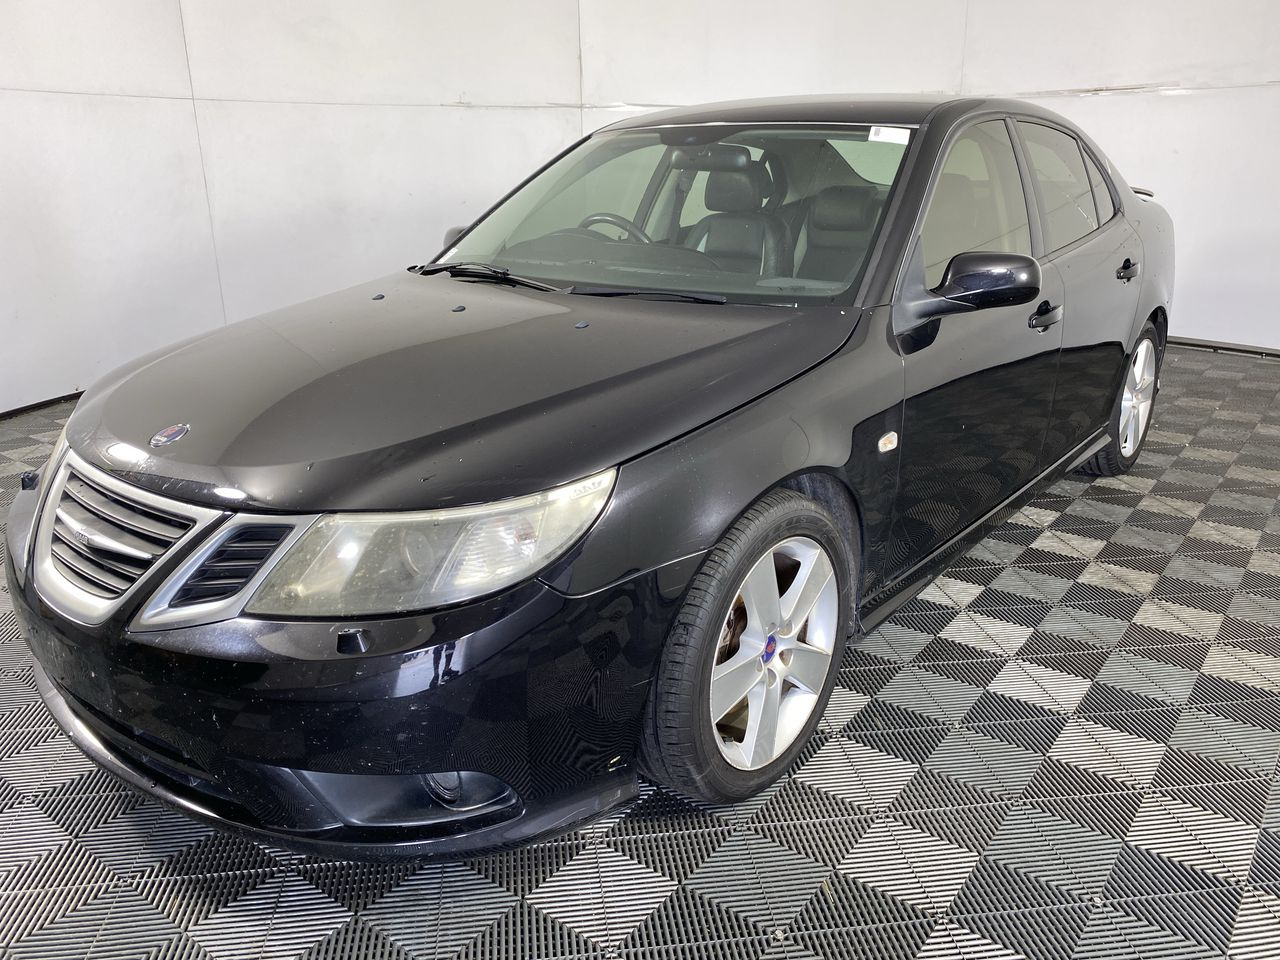 2007 Saab 9-3 Vector 2.0T Manual Sedan